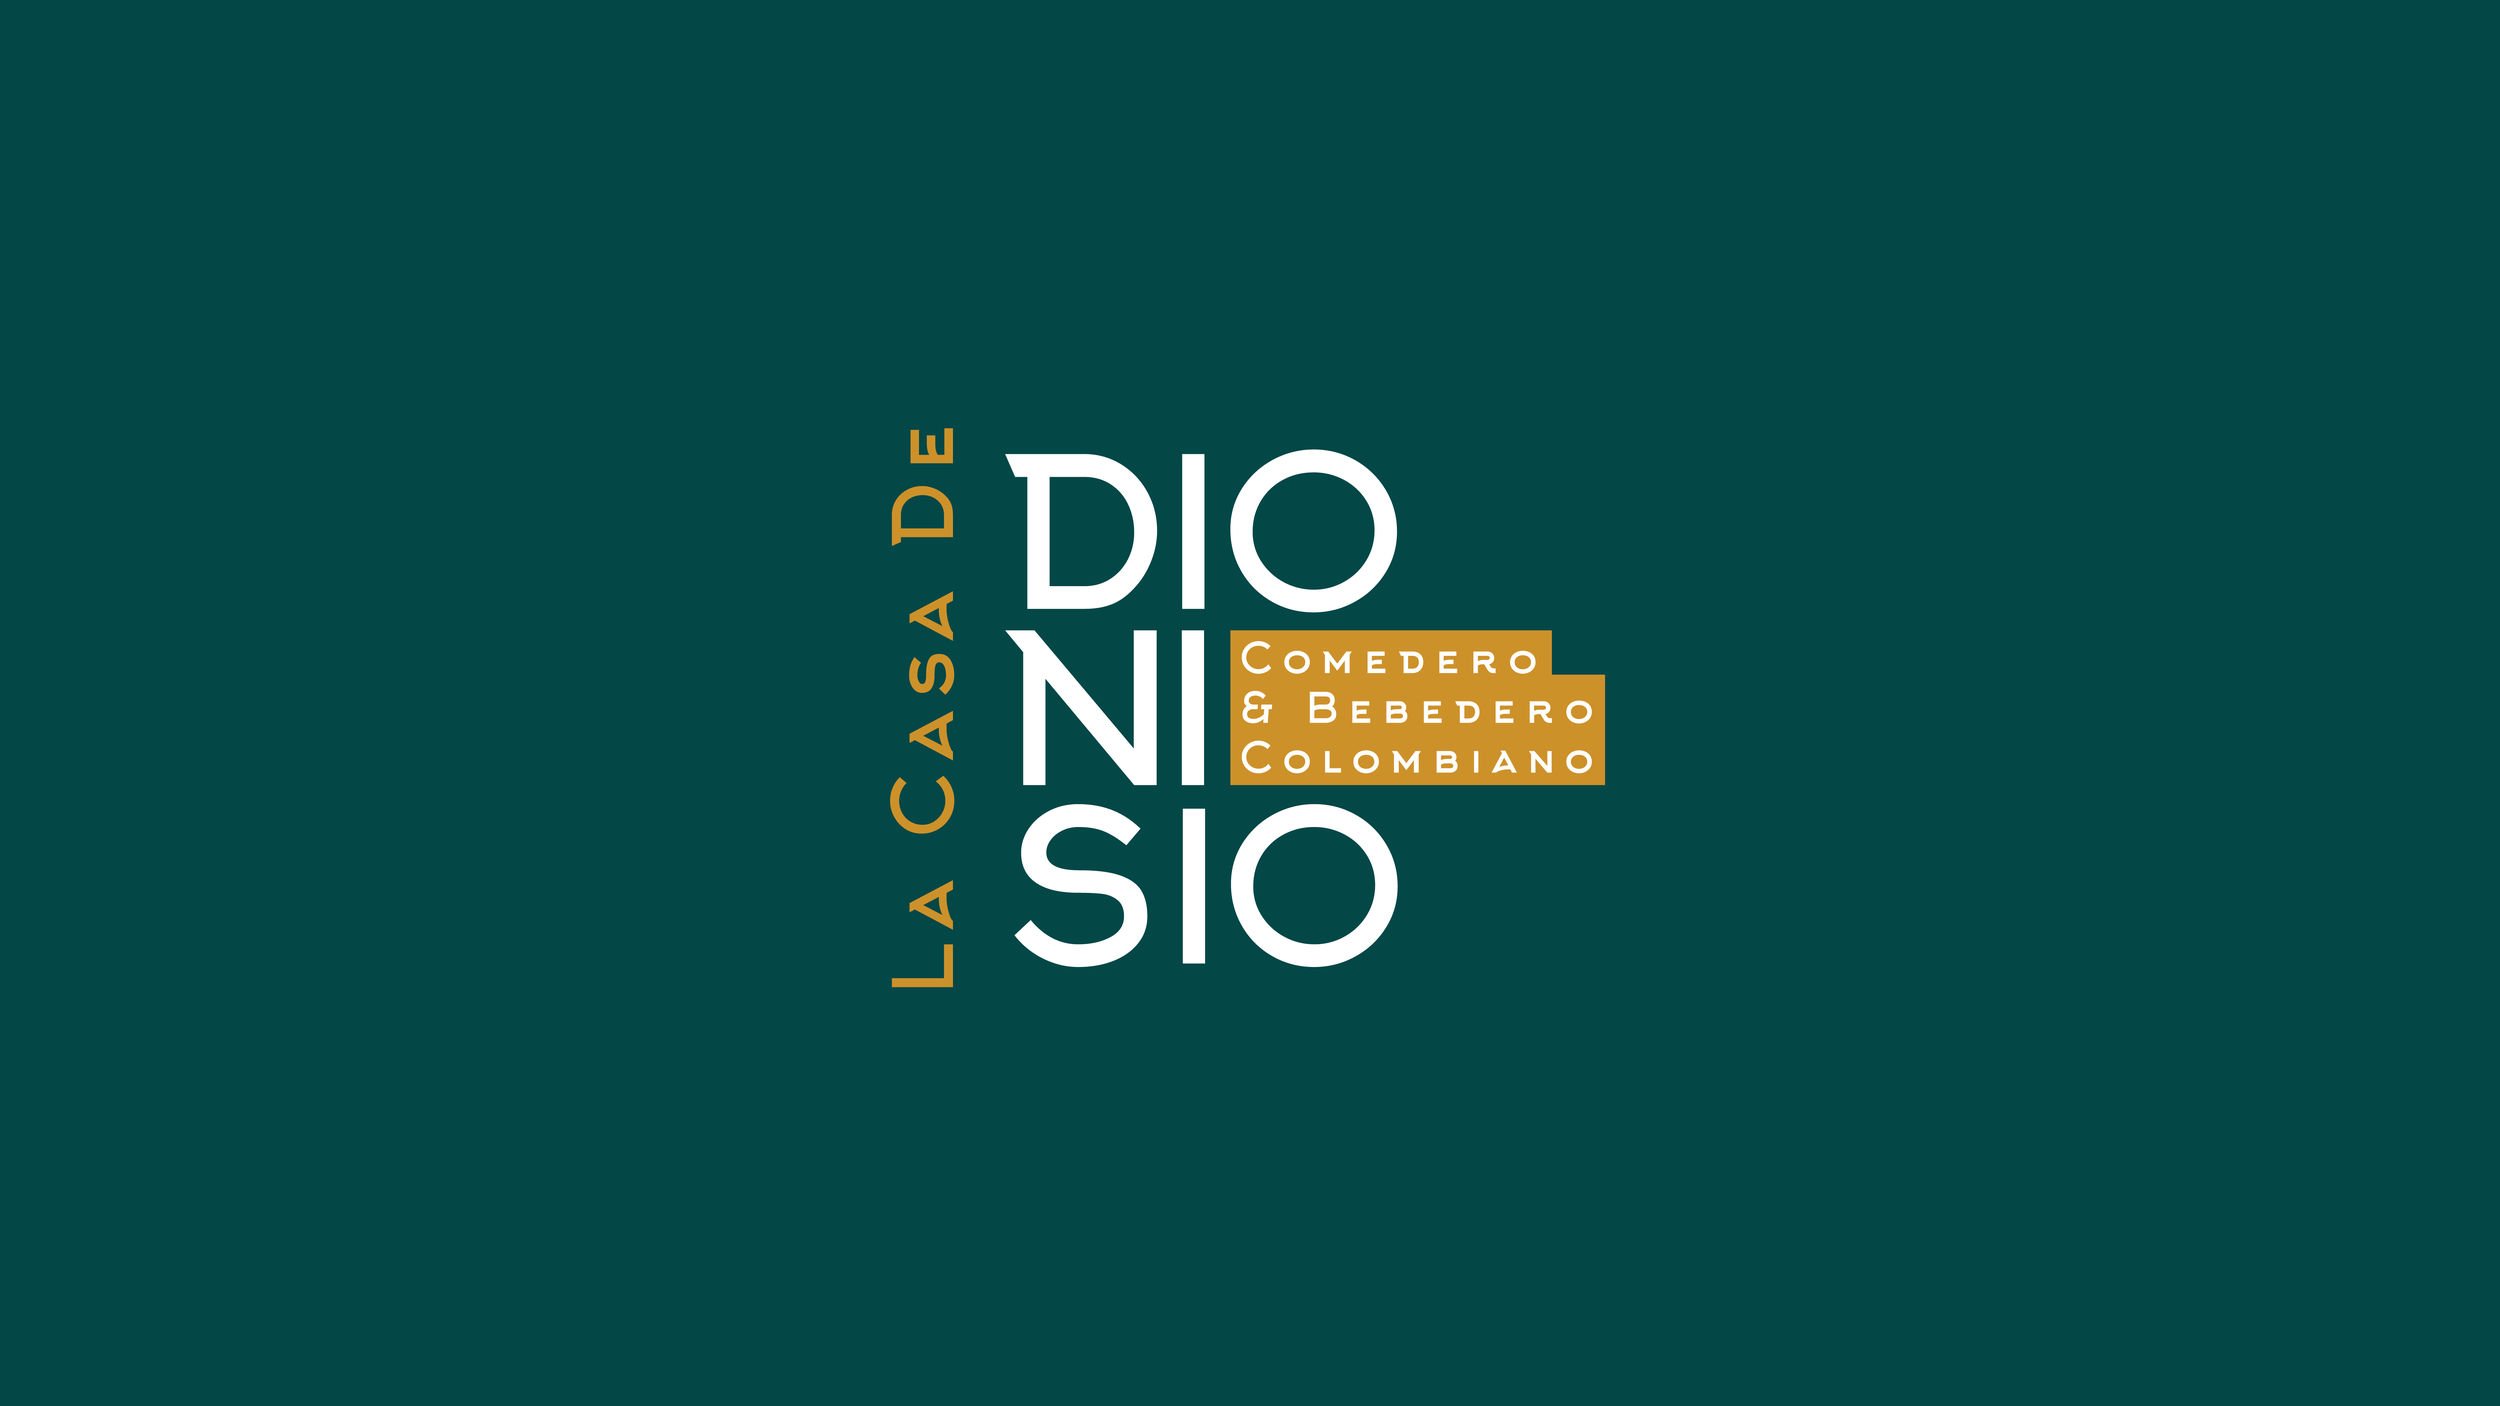 Dionisio_-01.png